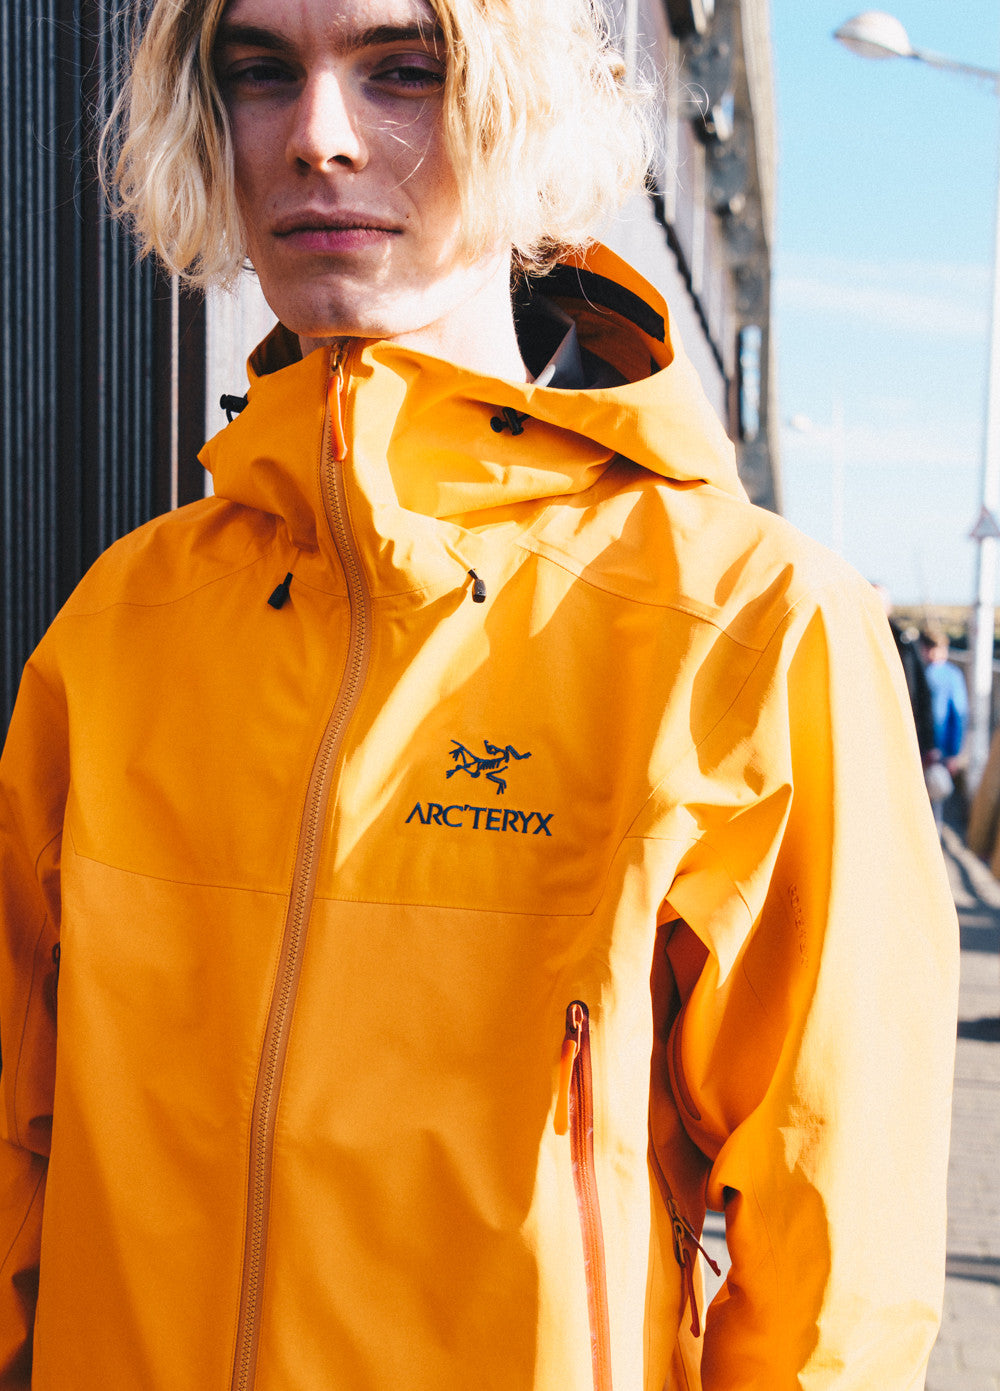 Arc'teryx Yellow Two